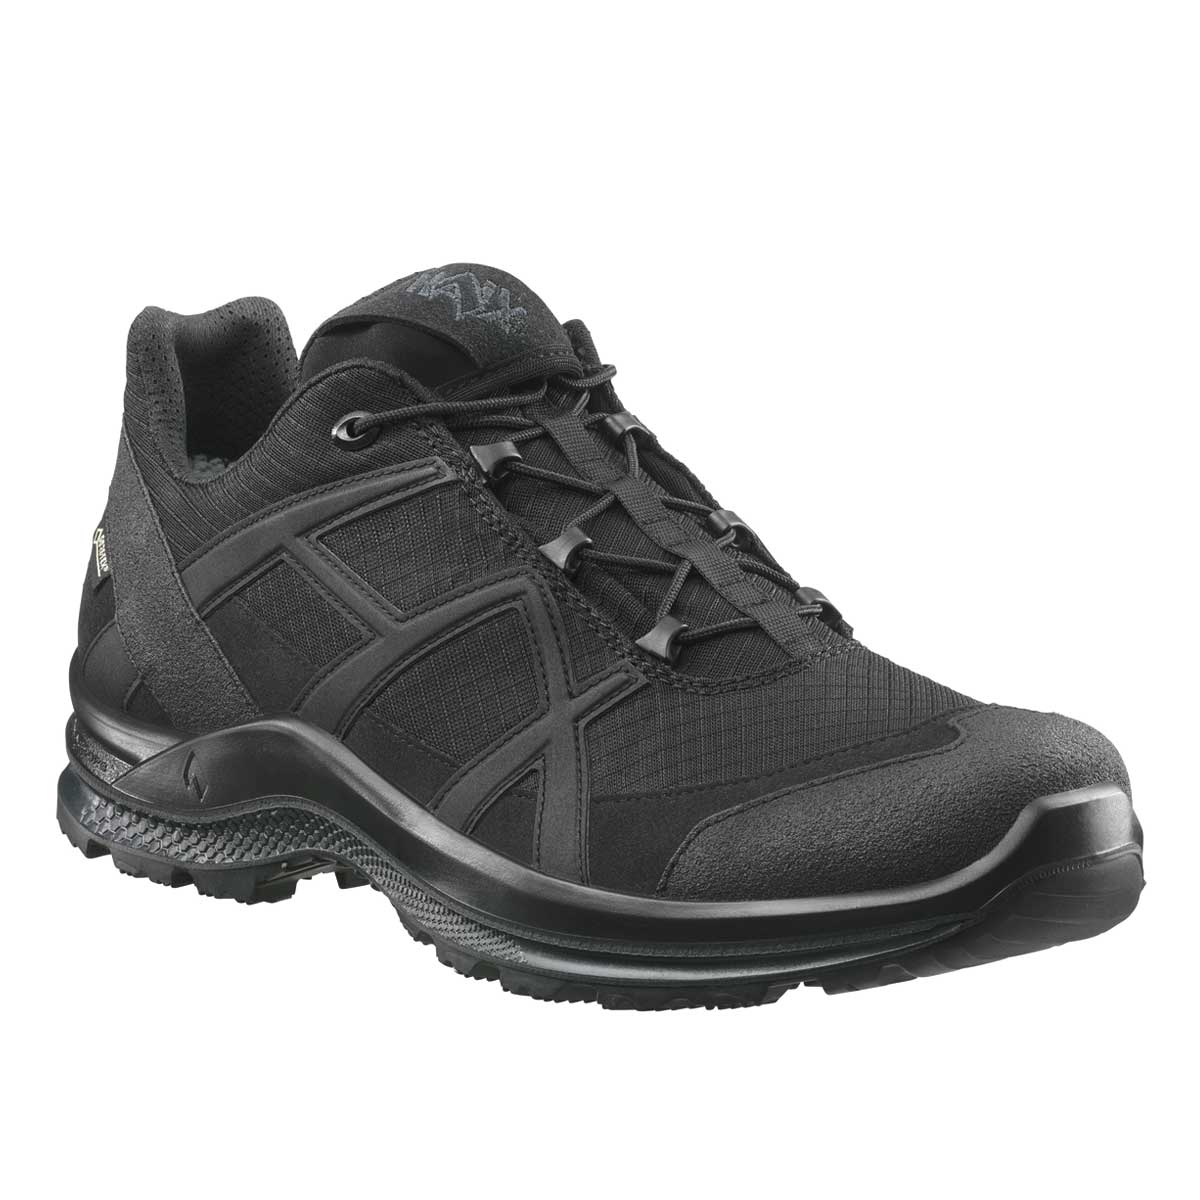 good service top quality new high quality Outdoorschuhe online kaufen | GenXtreme.at